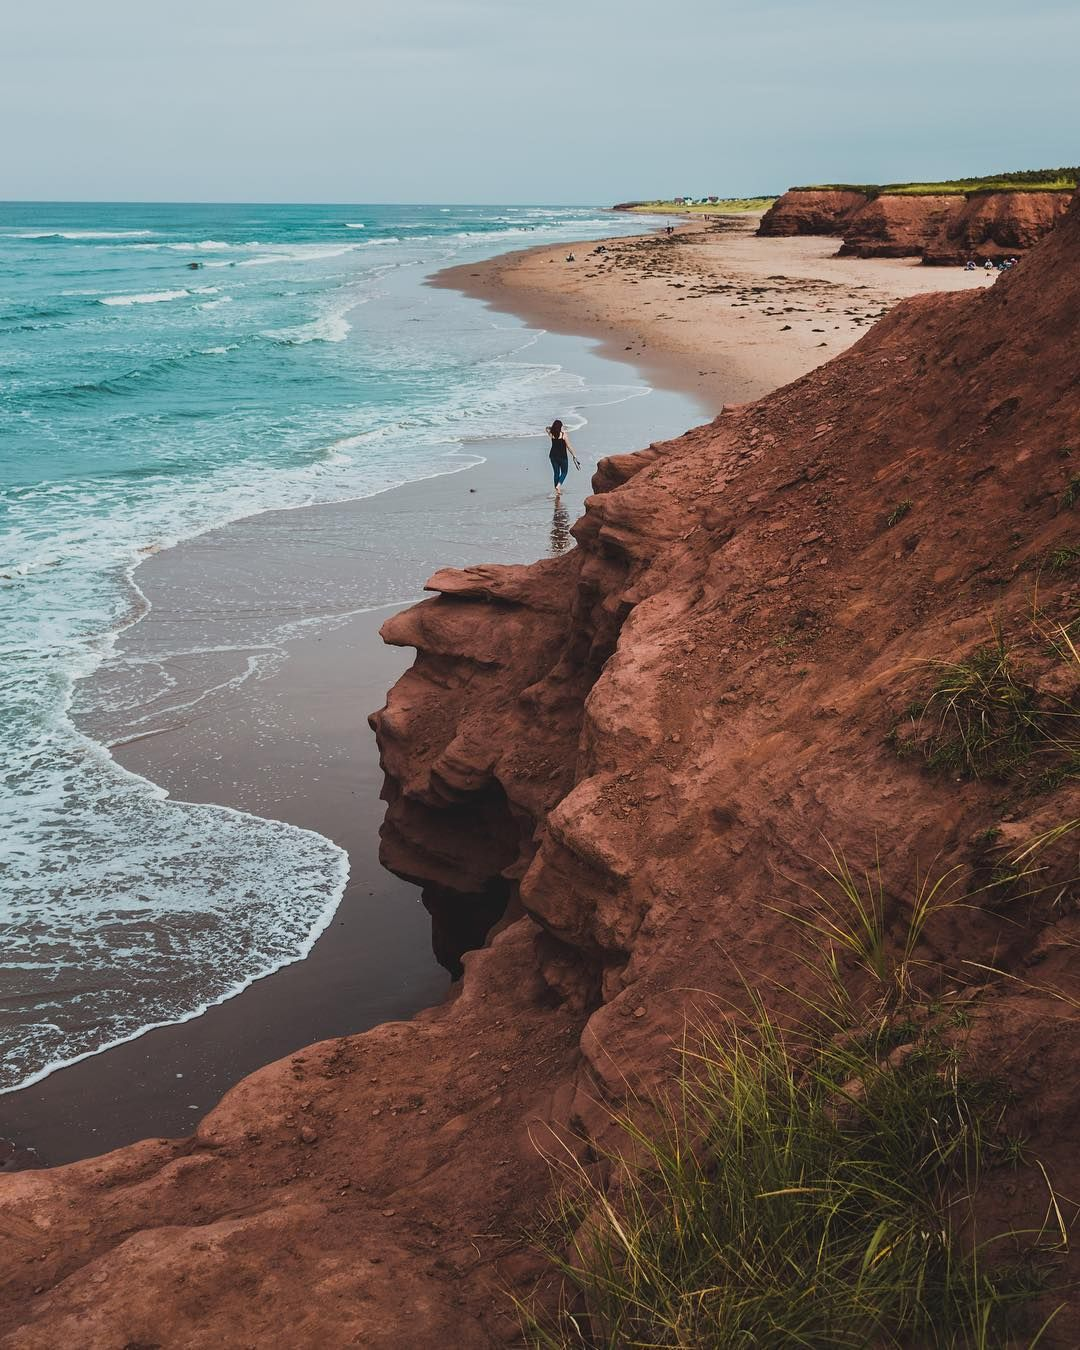 Prince Edward Island Beaches: Thunder Cove Beach (Prince Edward Island) By Μ Λ Τ Τ C Η Ι